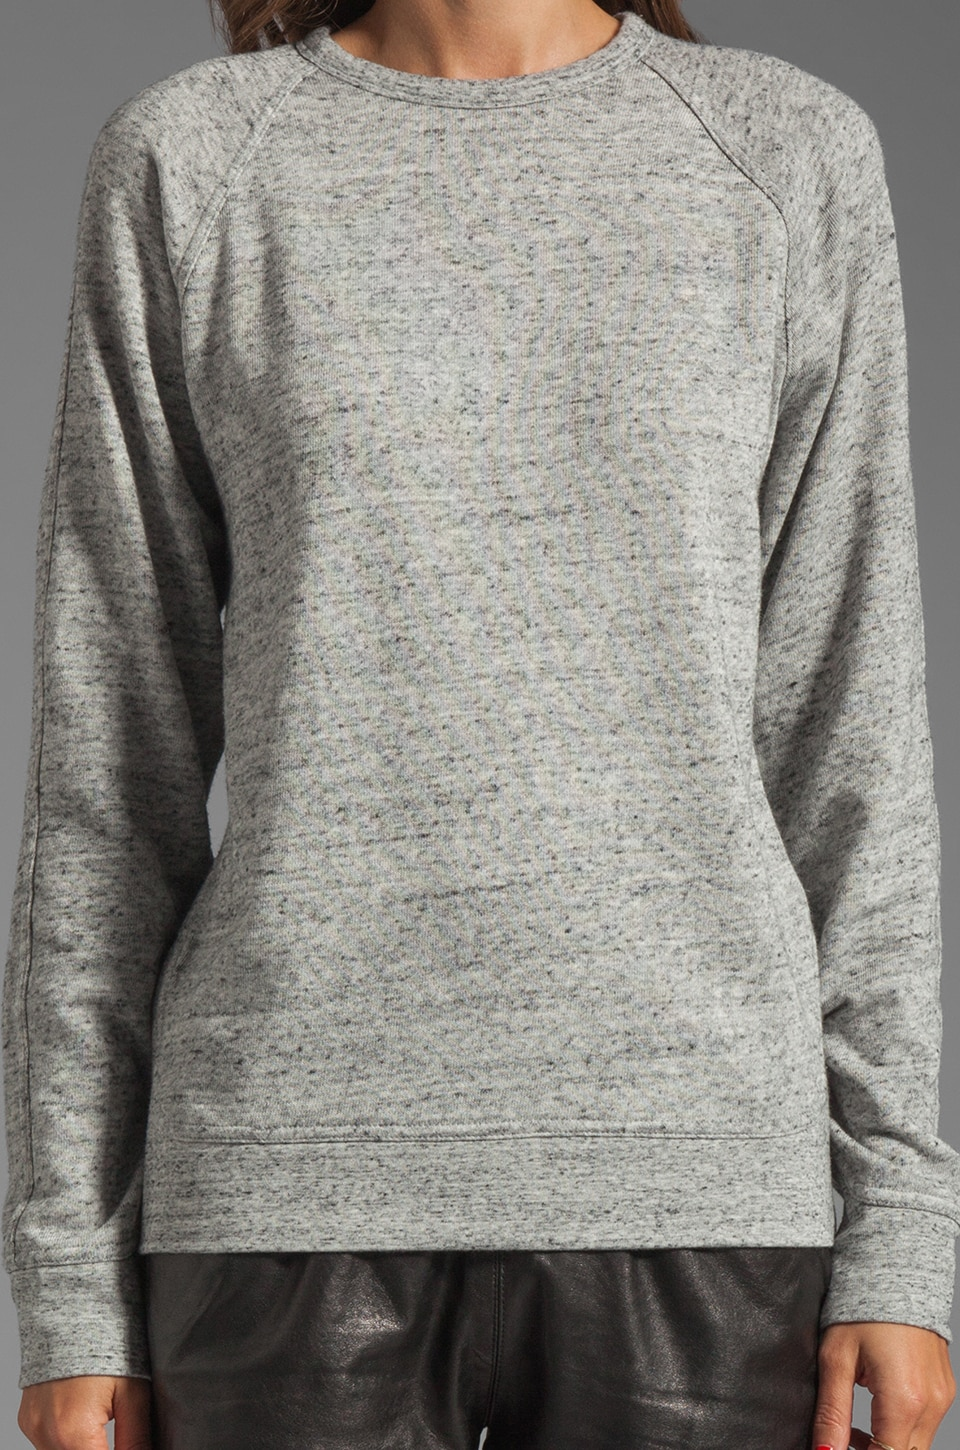 T by Alexander Wang Crew Neck Sweatshirt in Light Heather Grey